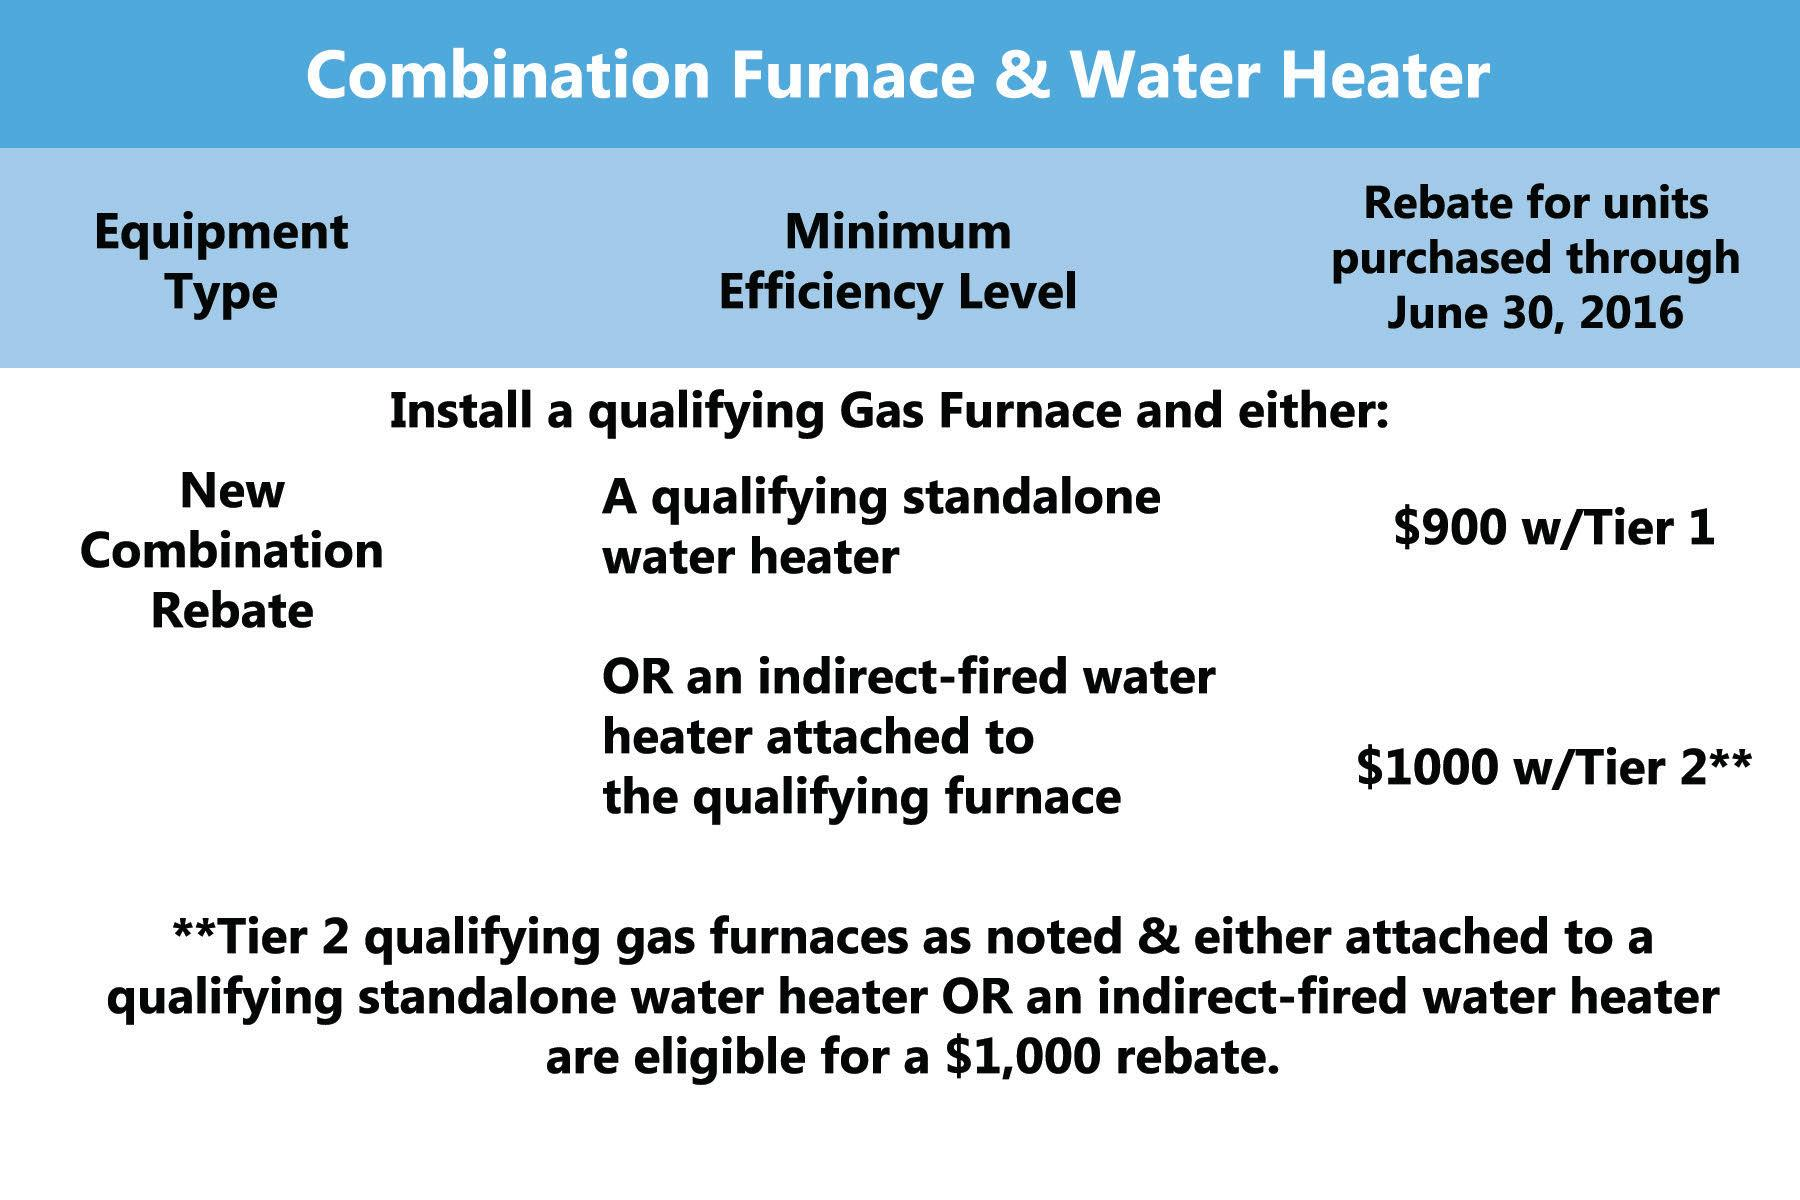 Furnaces & Waterheaters